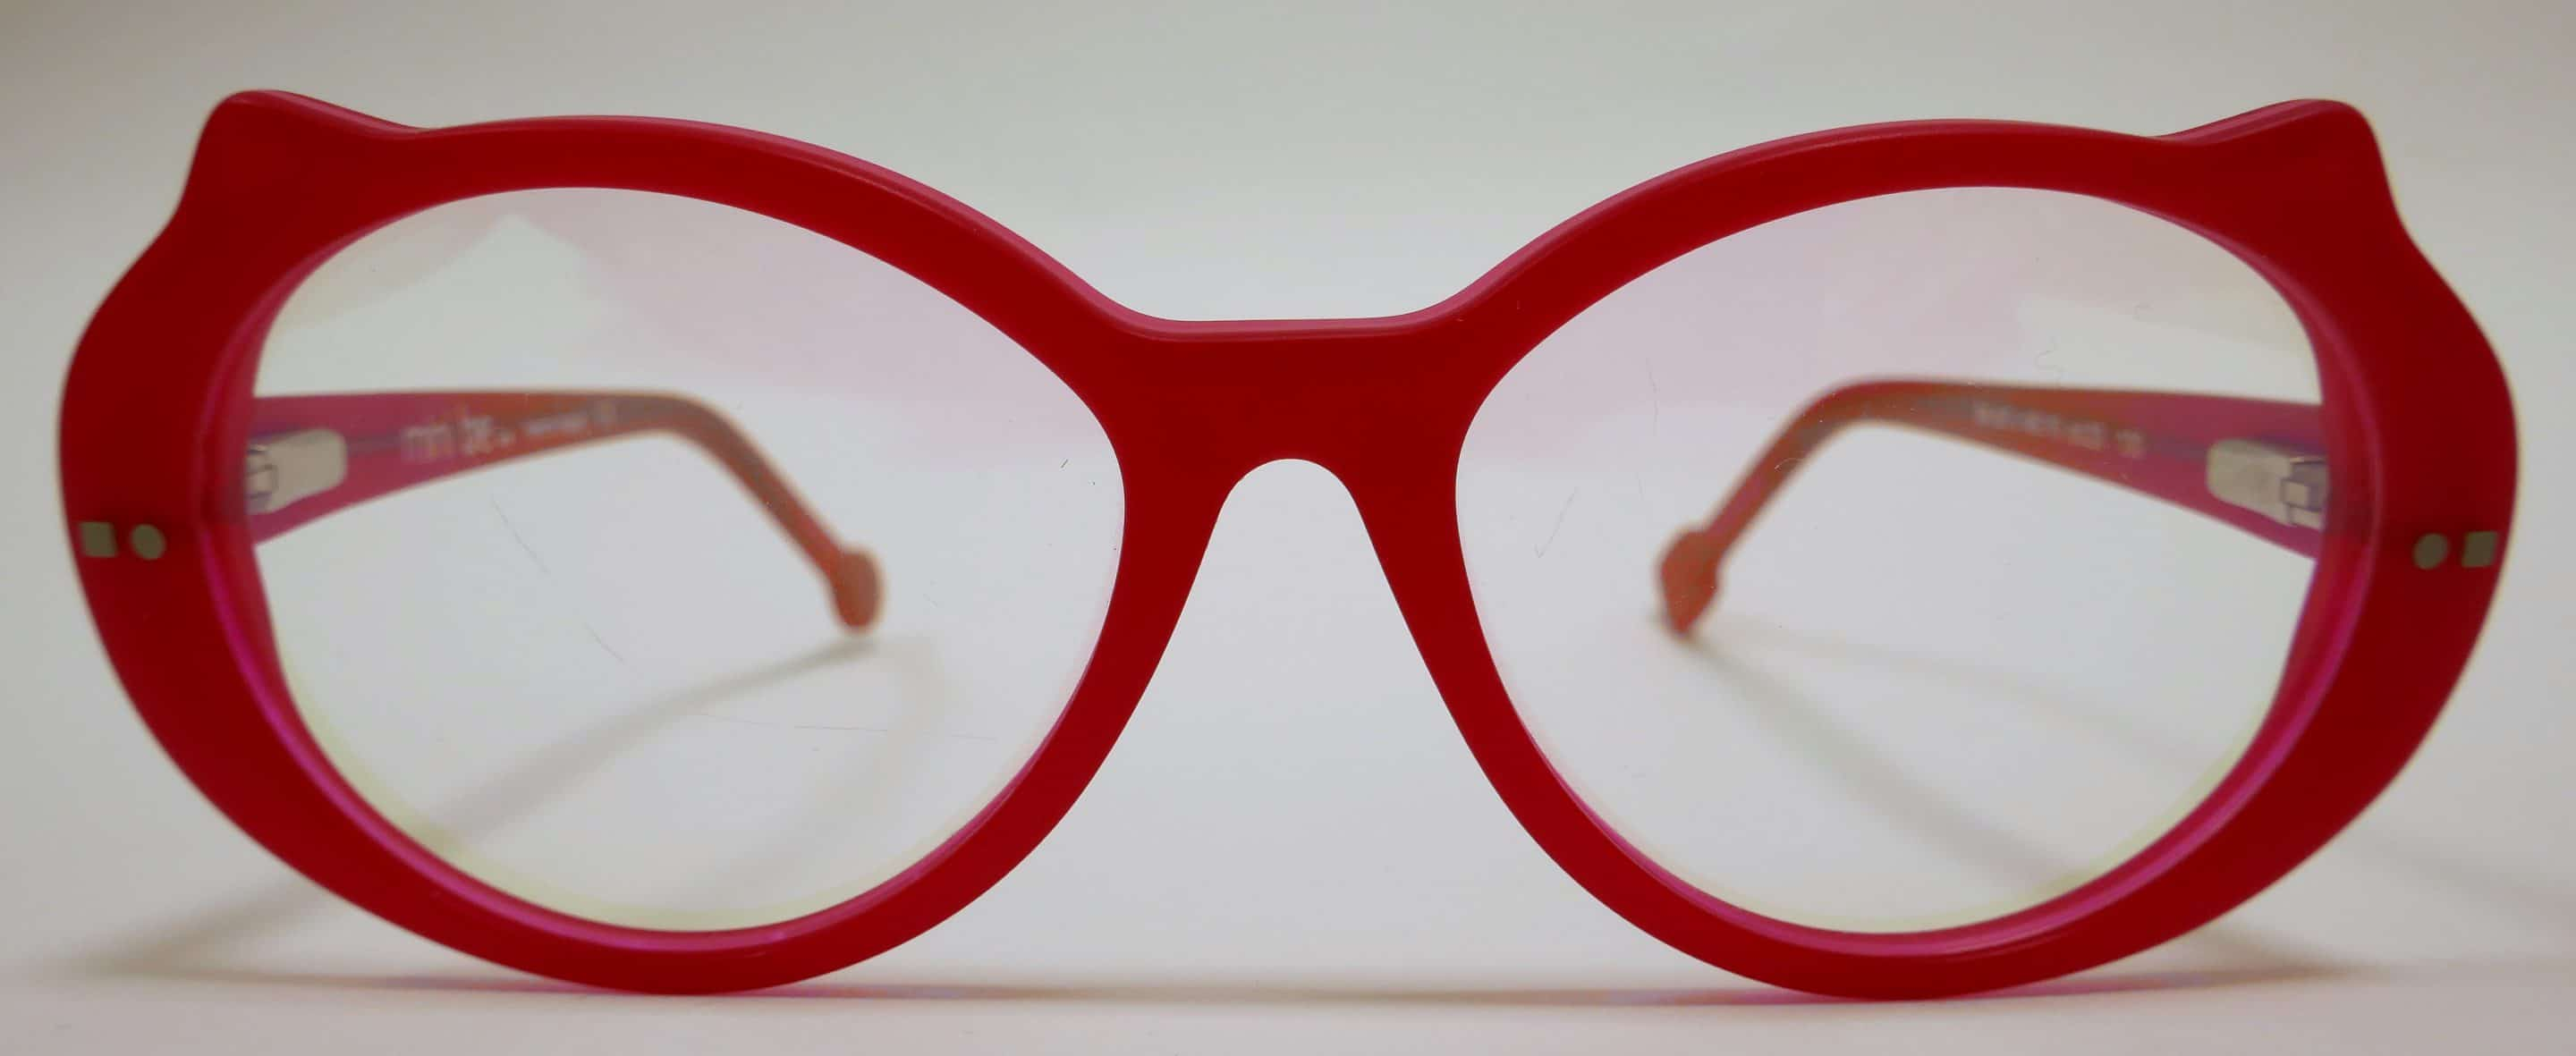 lunettes sabine be cool auvers